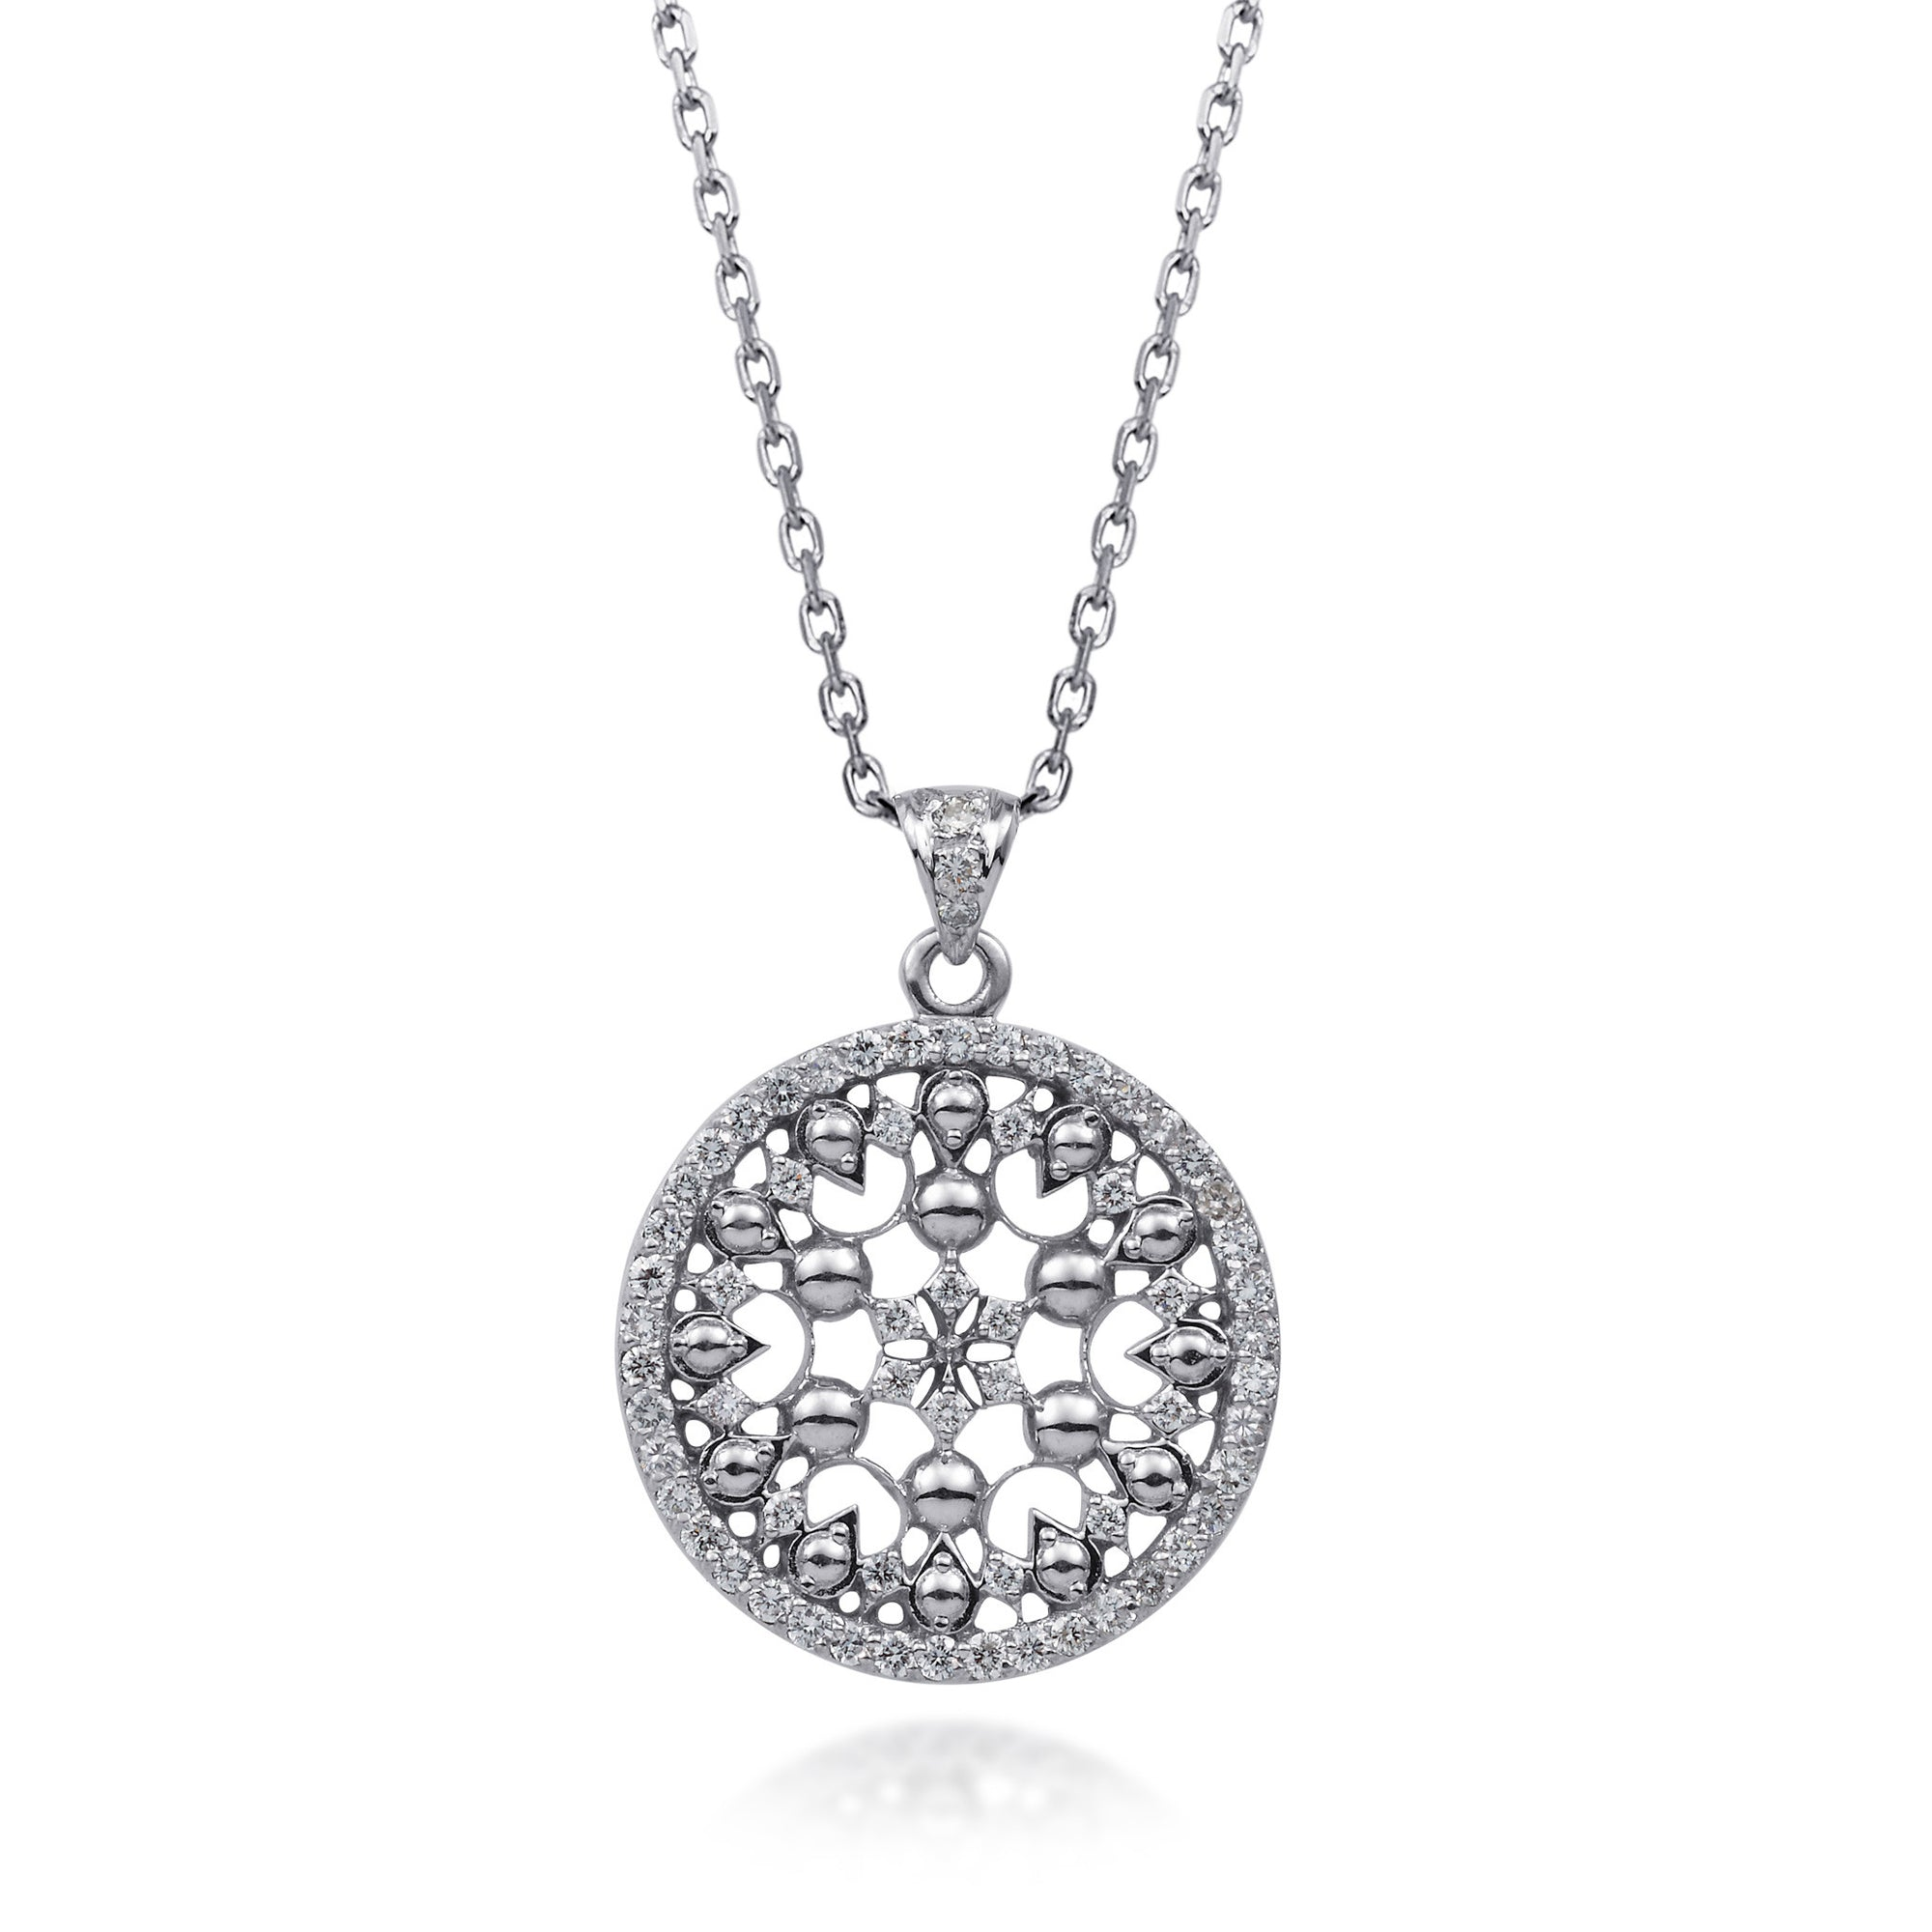 Diamond filigree pendant by scott mikolay in the celebration diamond filigree pendant by scott mikolay in the celebration collection aloadofball Image collections